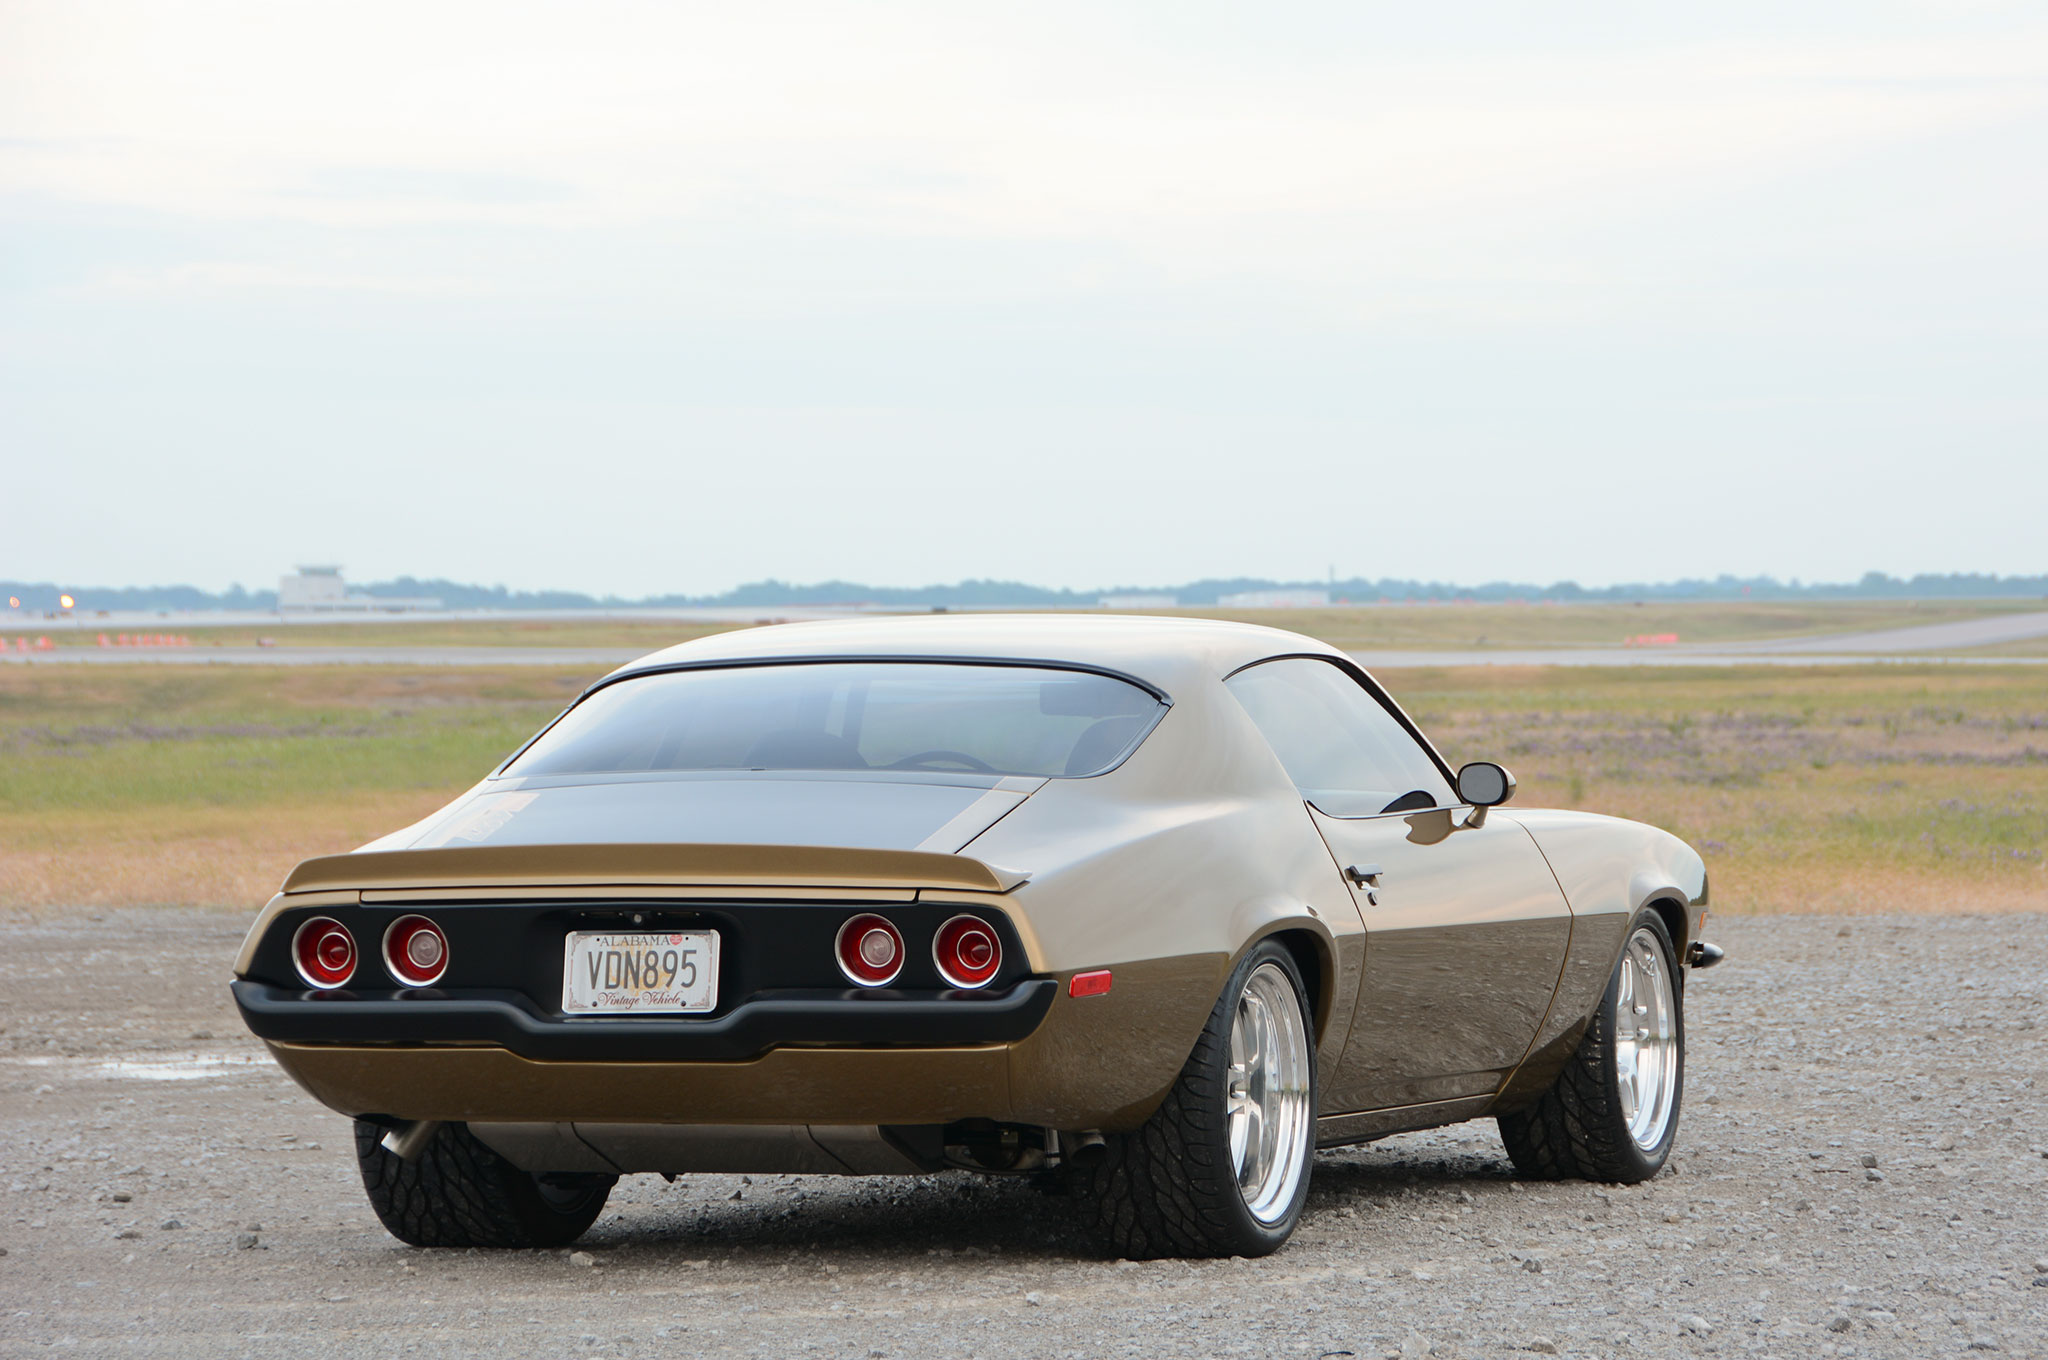 1970 Chevrolet Camaro Rear